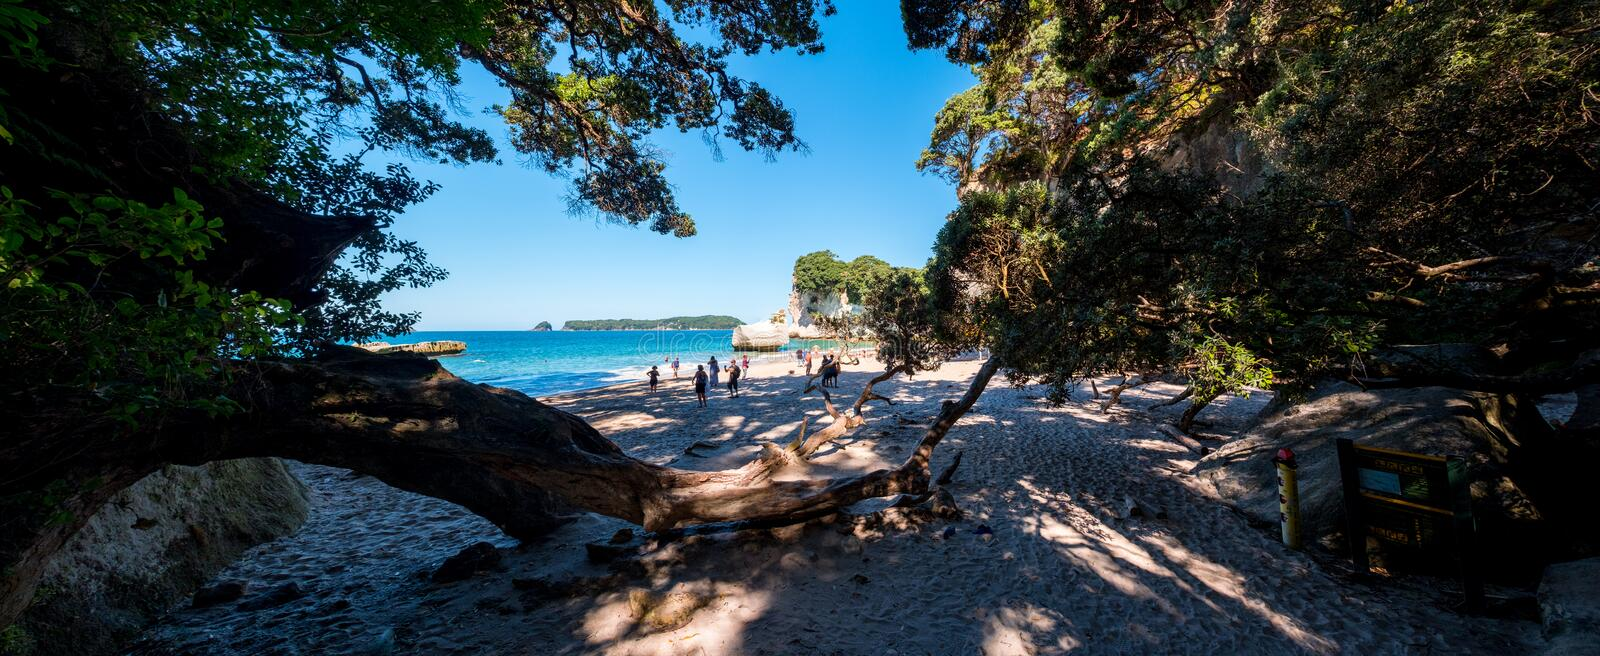 2019 FEB 19, New Zealand, Coromandel -  Panorama view of Chathdral cove the travelling destination in a beautiful day royalty free stock images